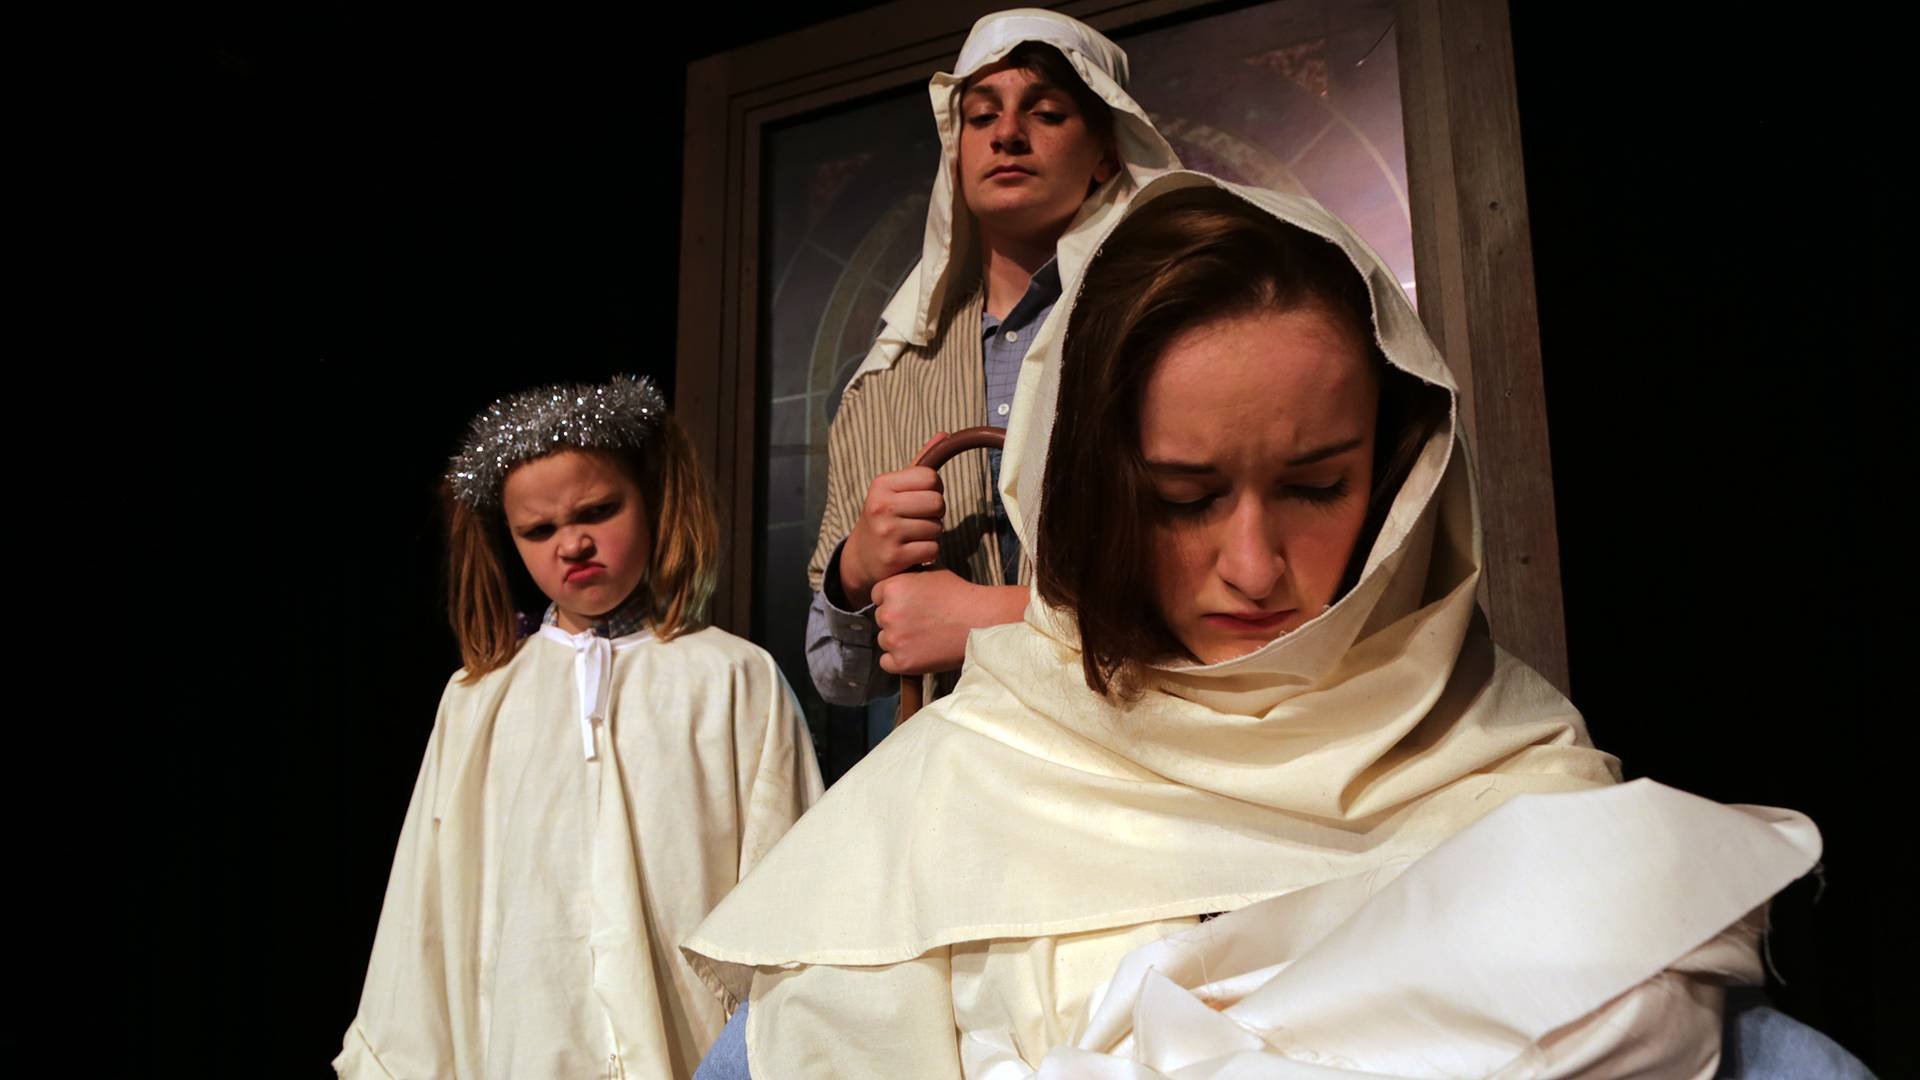 ac conservatory theatres the best christmas pageant ever opens - The Best Christmas Pageant Ever Play